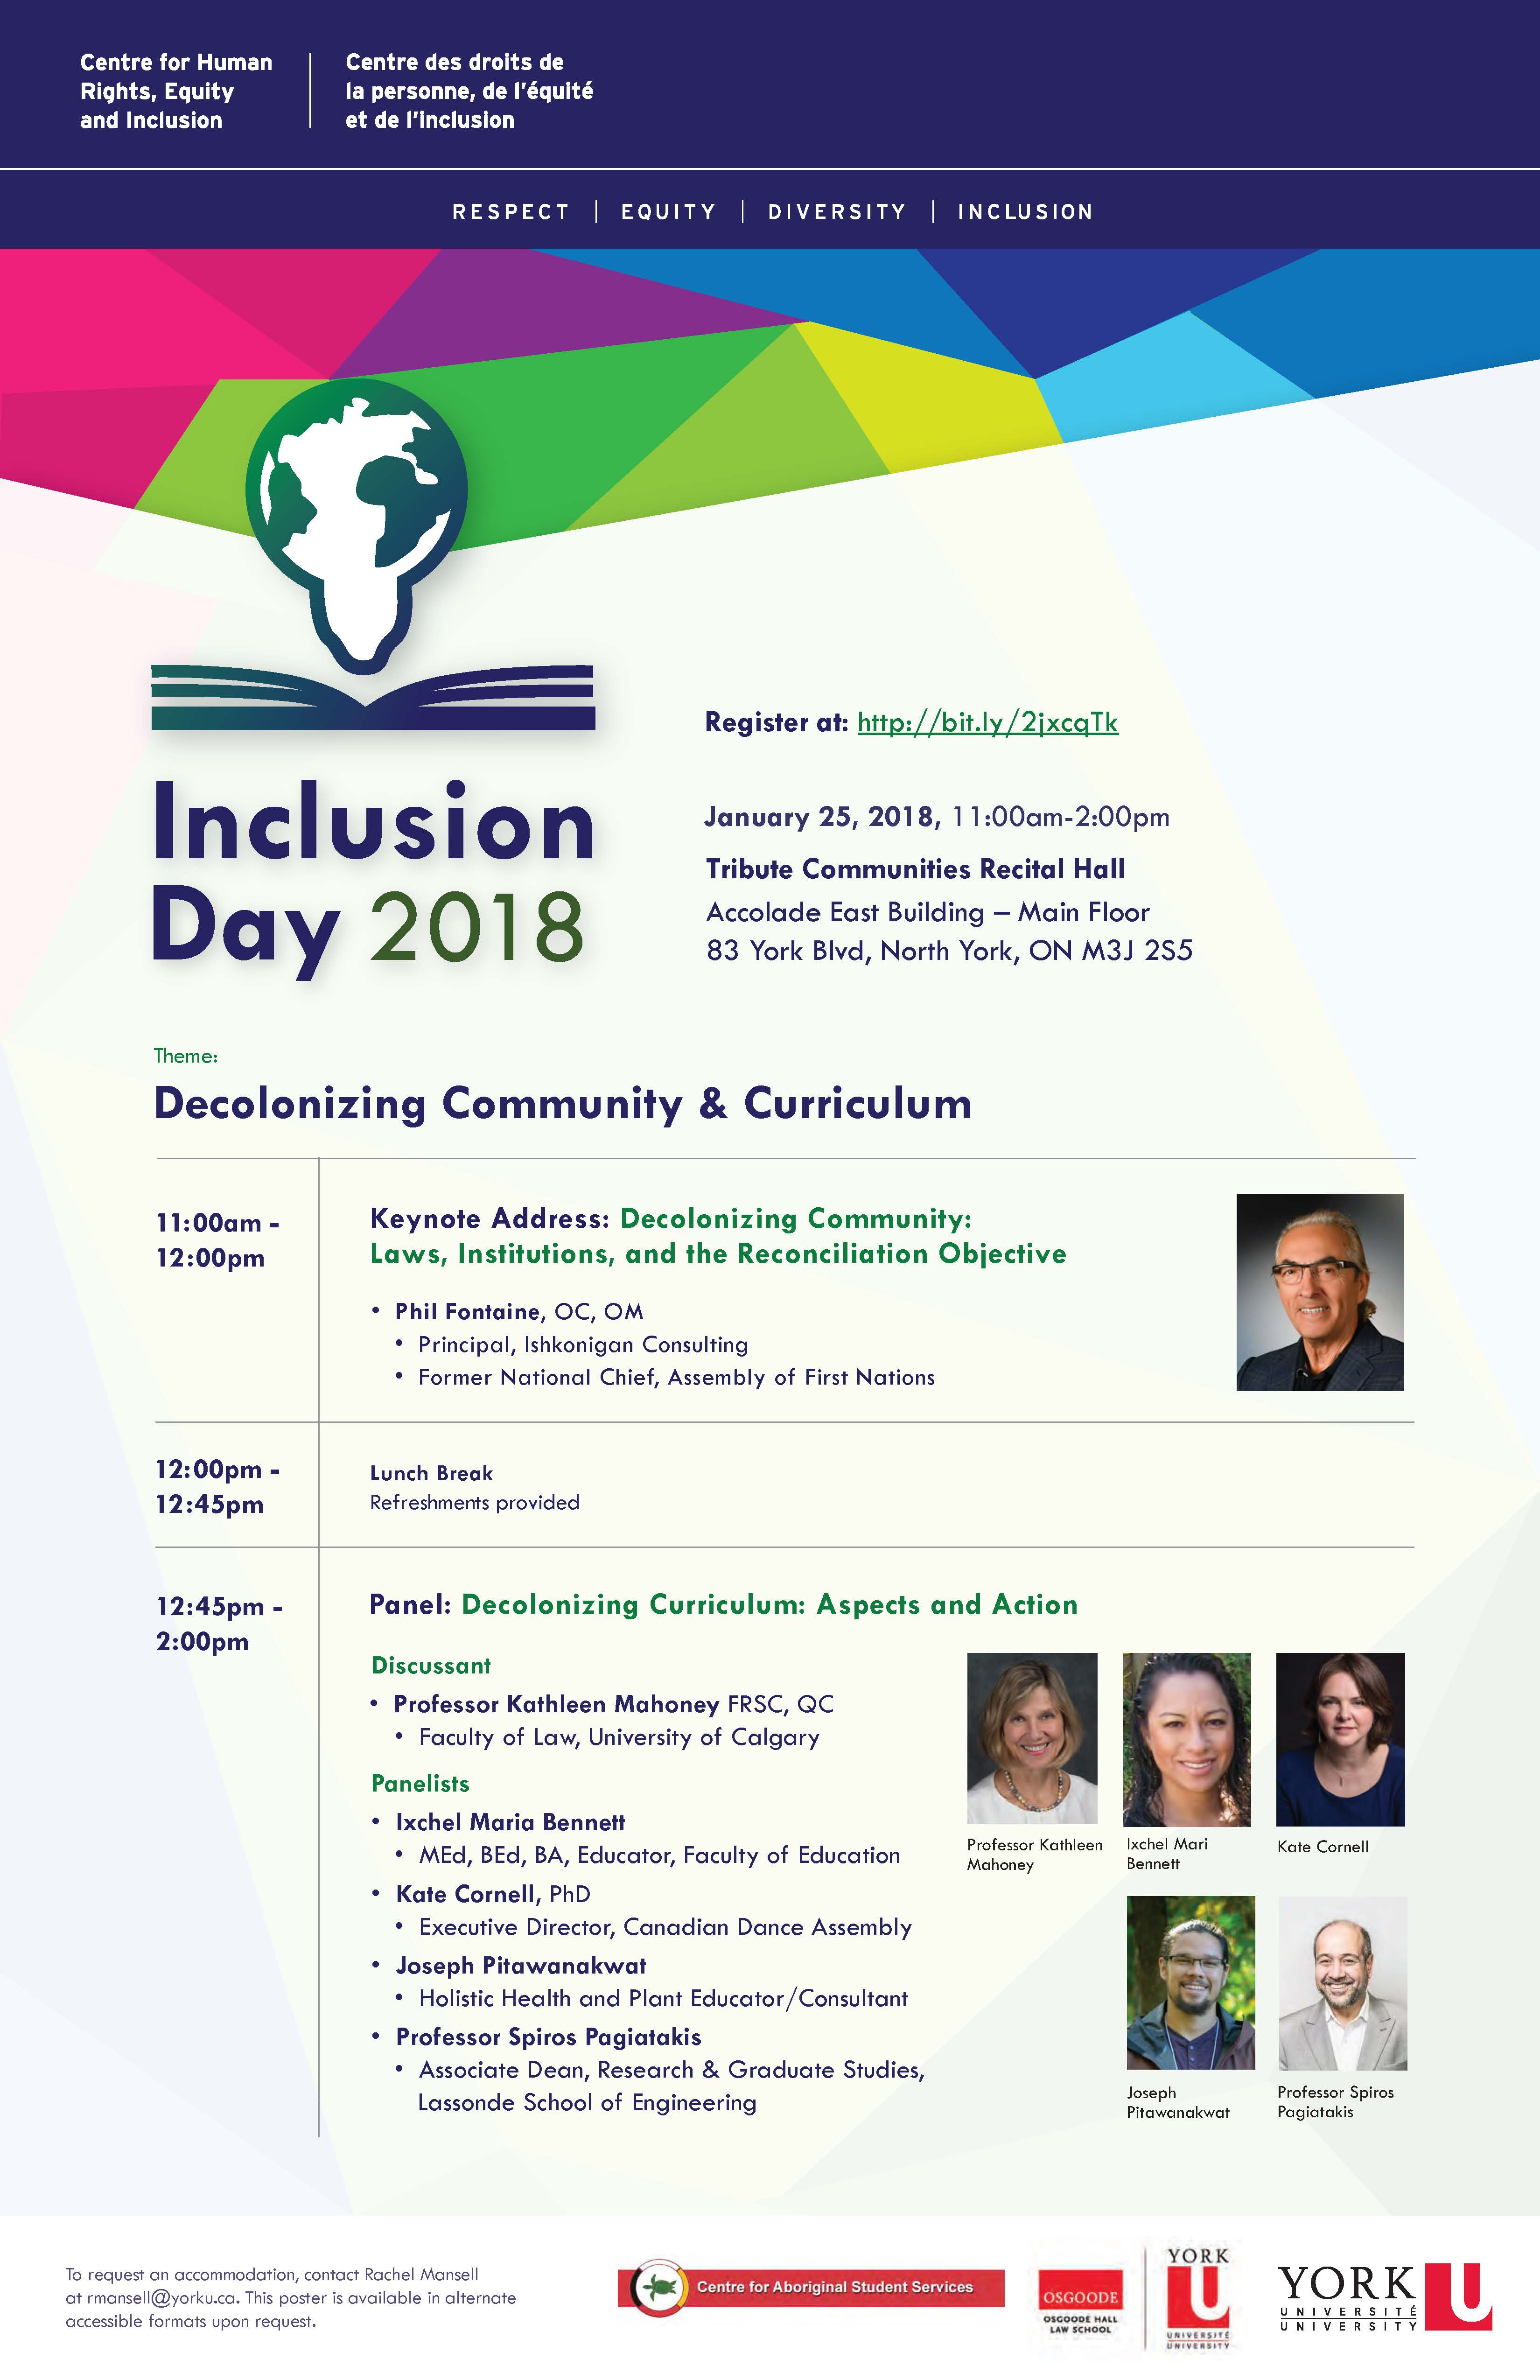 "Descriptive text: The top of the poster has a colourful banner of interlocking triangles in shades of green, yellow, blue, and purple. Overlaid on the banner is the text ""Centre for Human Rights, equity, and Inclusion. Centre es droits de la personne, de l'équité et de l'inclusion."" Under the banner is the Centre's motto of Respect, Equity, Diversity, and Inclusion. Below, on the left, is a graphic that shows a globe shaped as a lightbulb, hovering over an open book. Under the graphic is the title ""Inclusion Day 2018."" To the right of the graphic is the following text: ""Register at: http://bit.ly/2jxcqTk January 25, 2018, 11:00am to 2:00pm. Tribute Communities recital Hall. Accolodae East Building, Main Floor. 83 York Blvd, North York, ON M3J 2S5. Below this text the theme of Inclusion DAY 2018: Decolonizing Community and Curriculum. Under the theme is a table sharing information about the day's program: from 11:00am-12:00pm a Keynote Address titled ""Decolonizing Community: Laws, Institutions, and the Reconciliation Objective"" will be delivered by Phil Fontaine, OC, OM; Principal, Ishkonigan Consulting and Former National Chief, Assembly of First Nations. This line includes a portrait of Phil Fontaine. The next row indicates that from 12:00-12:45 pm there will be a lunch break, with refreshments provided. The last row indicates that, from 12:45pm-2:00pm a panel discussion on ""Decolonizing Curriculum: Aspects and Action"" will happen, with Professor Kathleen Mahoney FRSC, QC, Faculty of Law, University of Calgary acting as a discussant and with a list of the following panelists: Ixchel Maria Bennett, MEd, BEd, BA, Eucator, Faculty of Education  Kate Cornell, PhD, Executive Director, Canadian Dance Assembly Joseph Pitawanakwat, Holistic Health and Pant Educator/Consultant Professor Spiros Pagiatakis, Associate Dean, Research & Graduate Studies, Lassonde School of Engineering. On the left side of the footer there is small font text saying ""To request an accommodation, contact Rachel Mansell at rmansell@yorku.ca. This poster is available in accessible formats upon request. On the right side of the footer, logos of the Centre for Aboriginal Student Services, Osgoode Hall Law School, and York University are displayed."